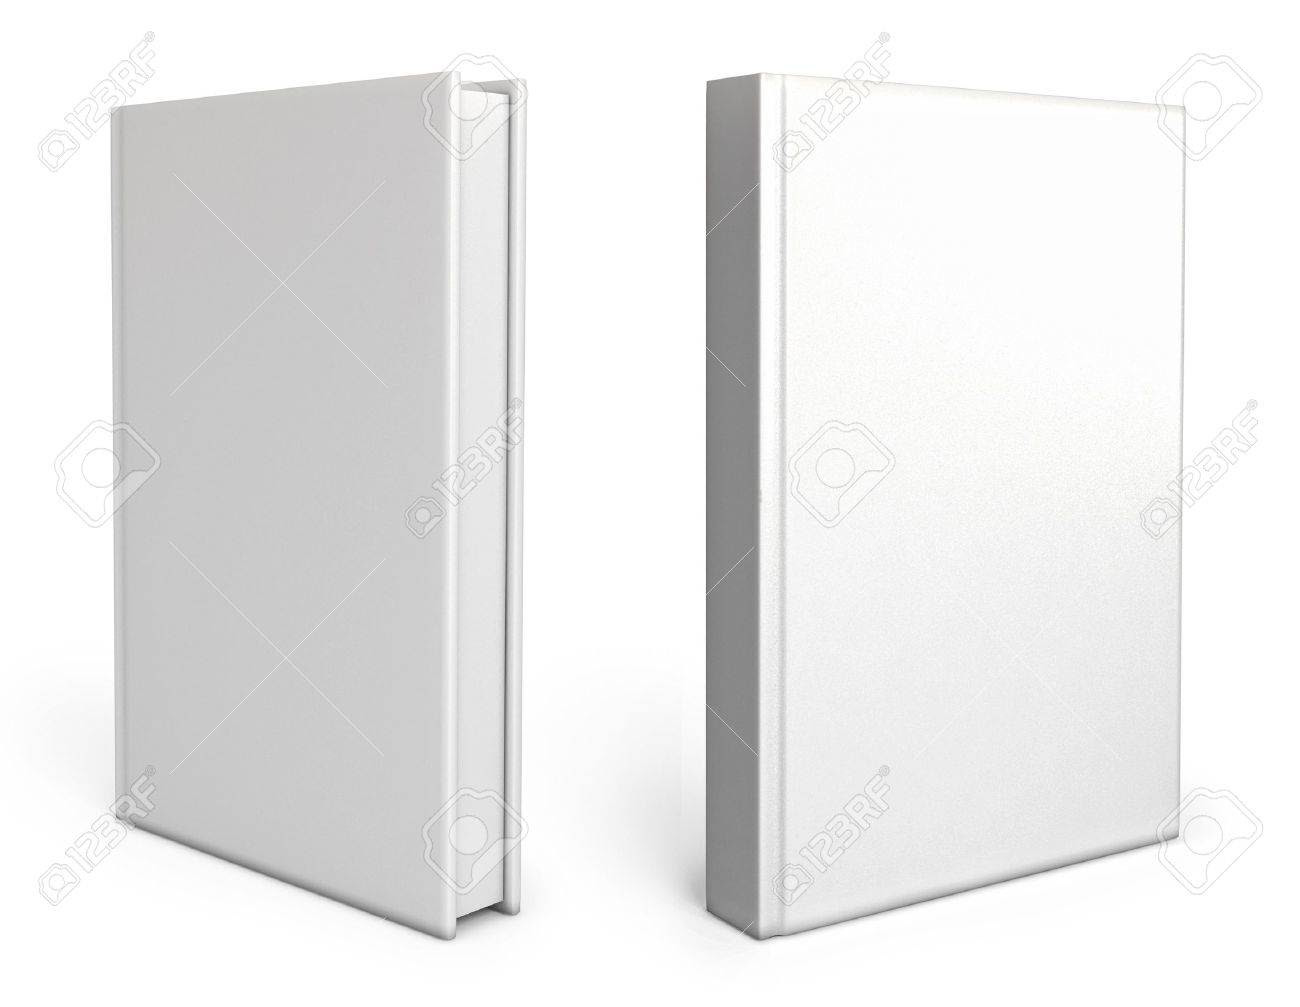 Front View Of Blank Book Cover White Stock Photo, Picture And ...